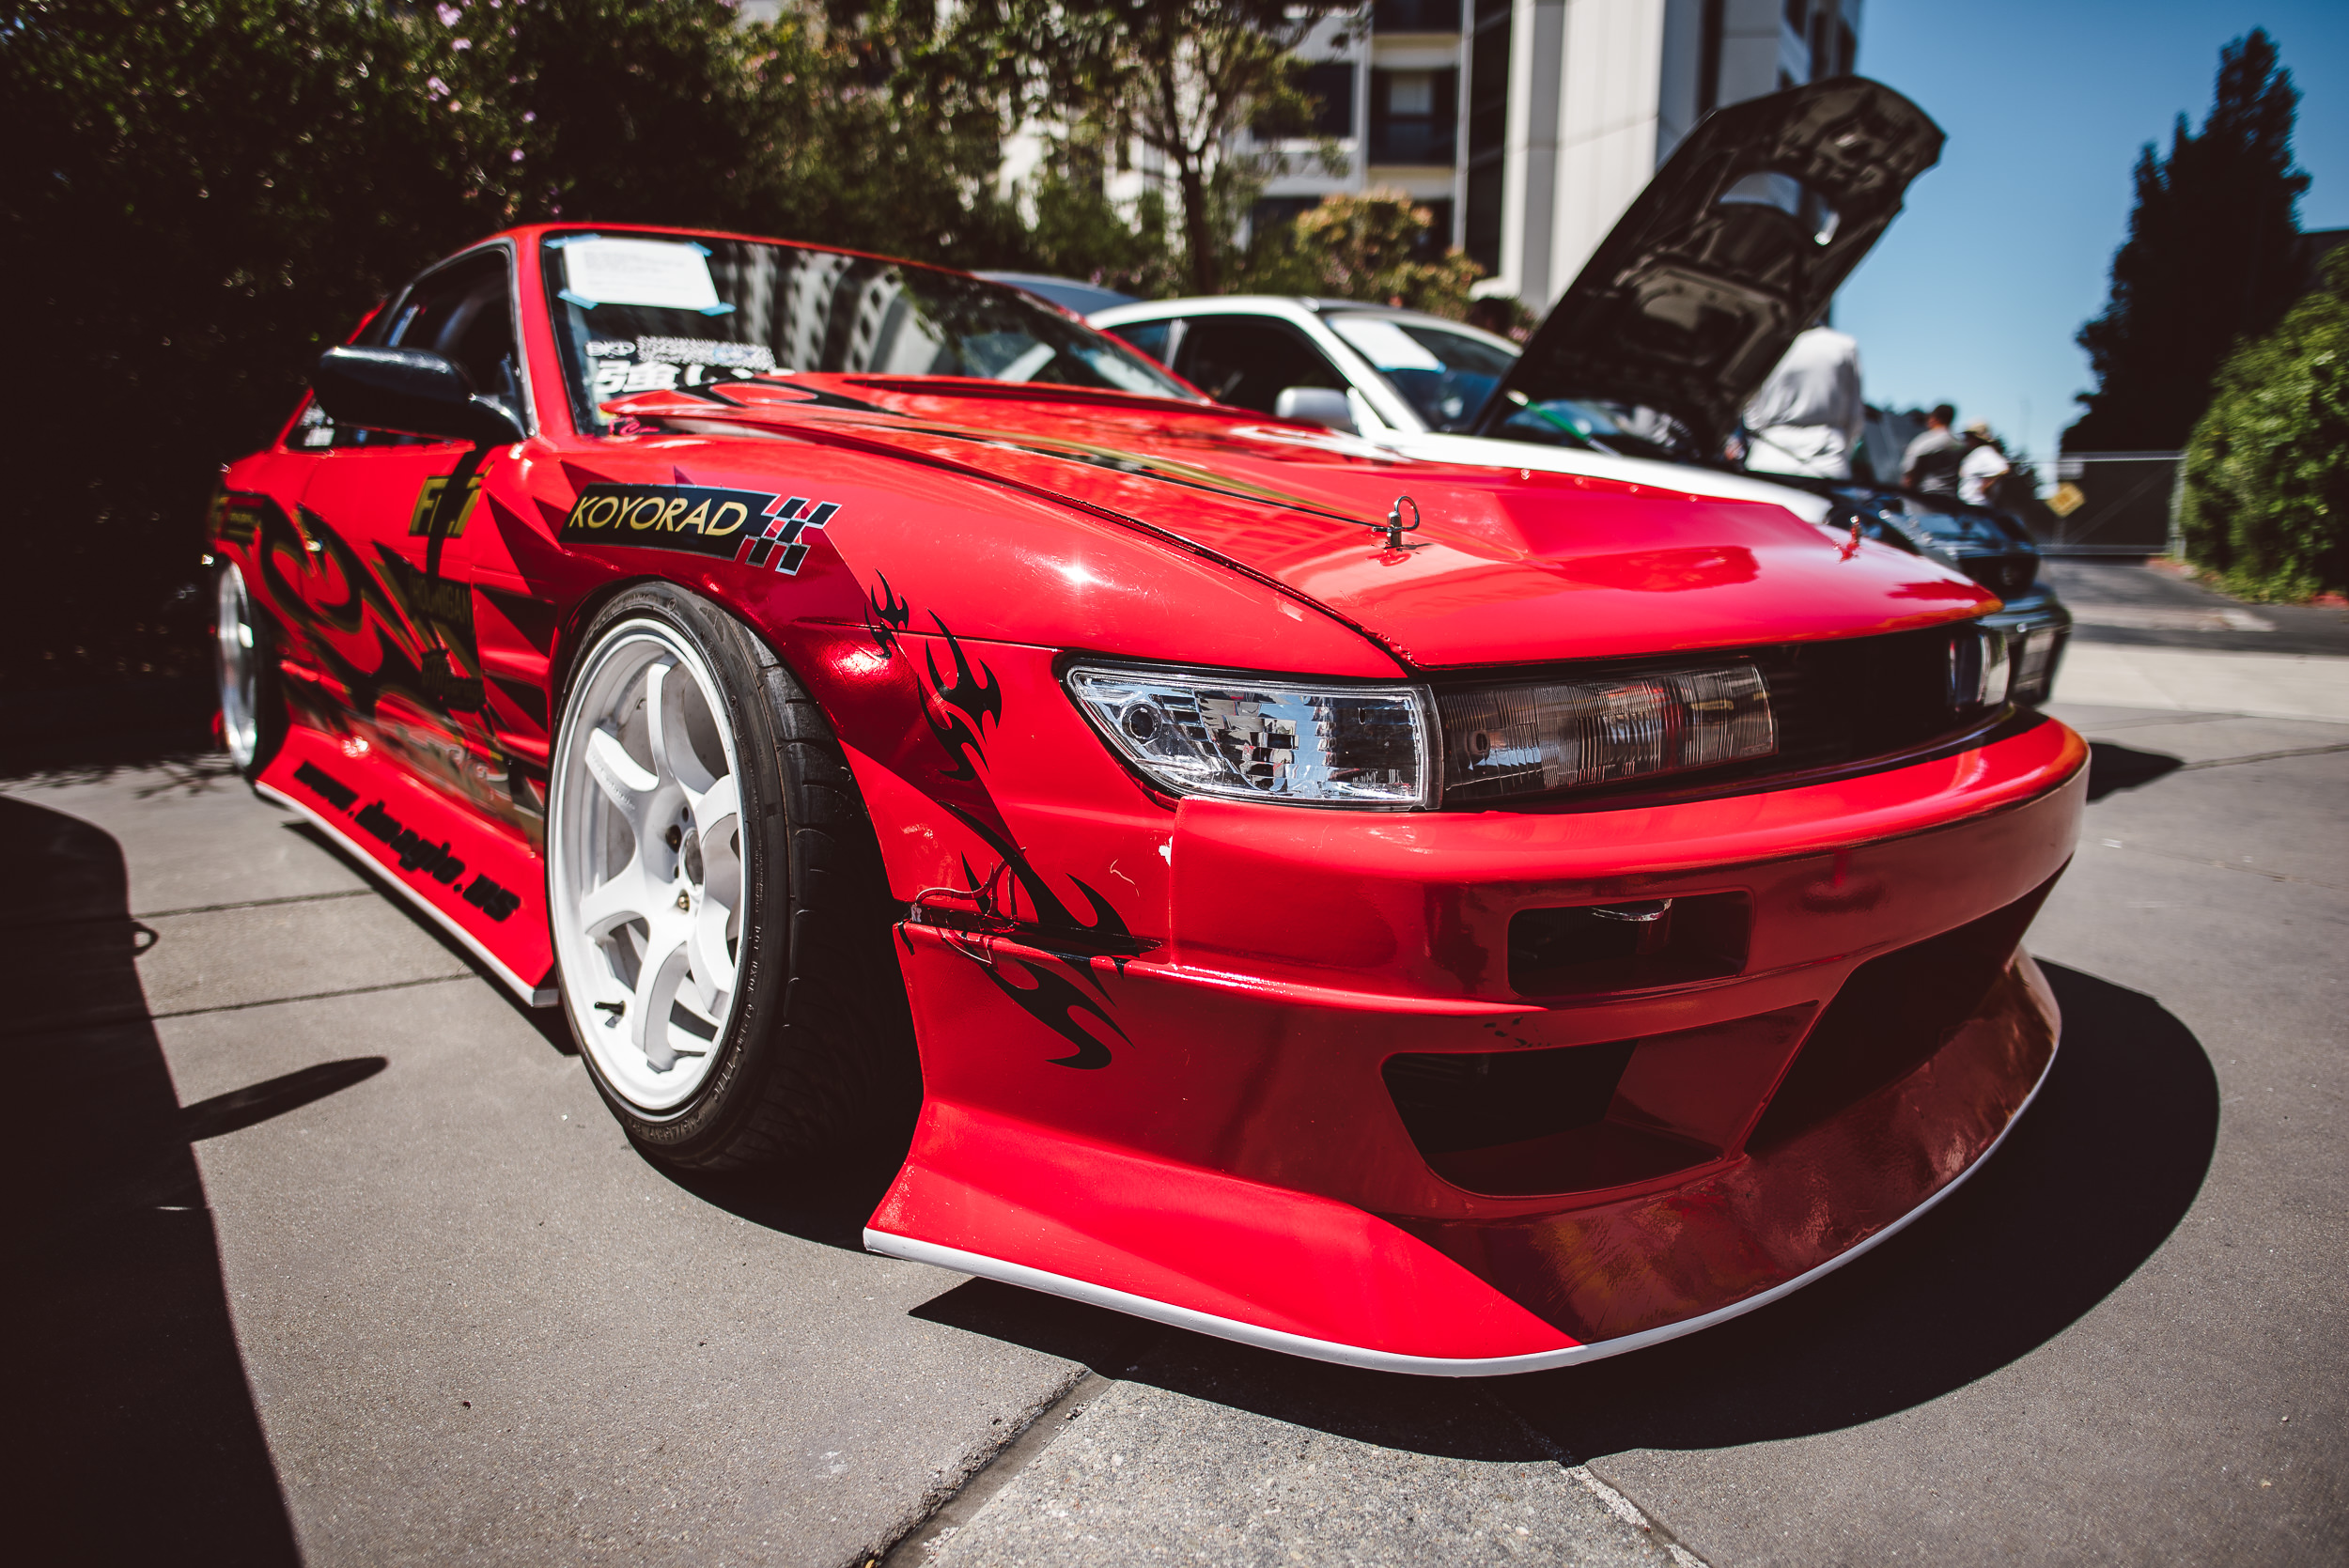 Bay Area Car Photography Coffee And Cars Reggie Ballesteros Photography